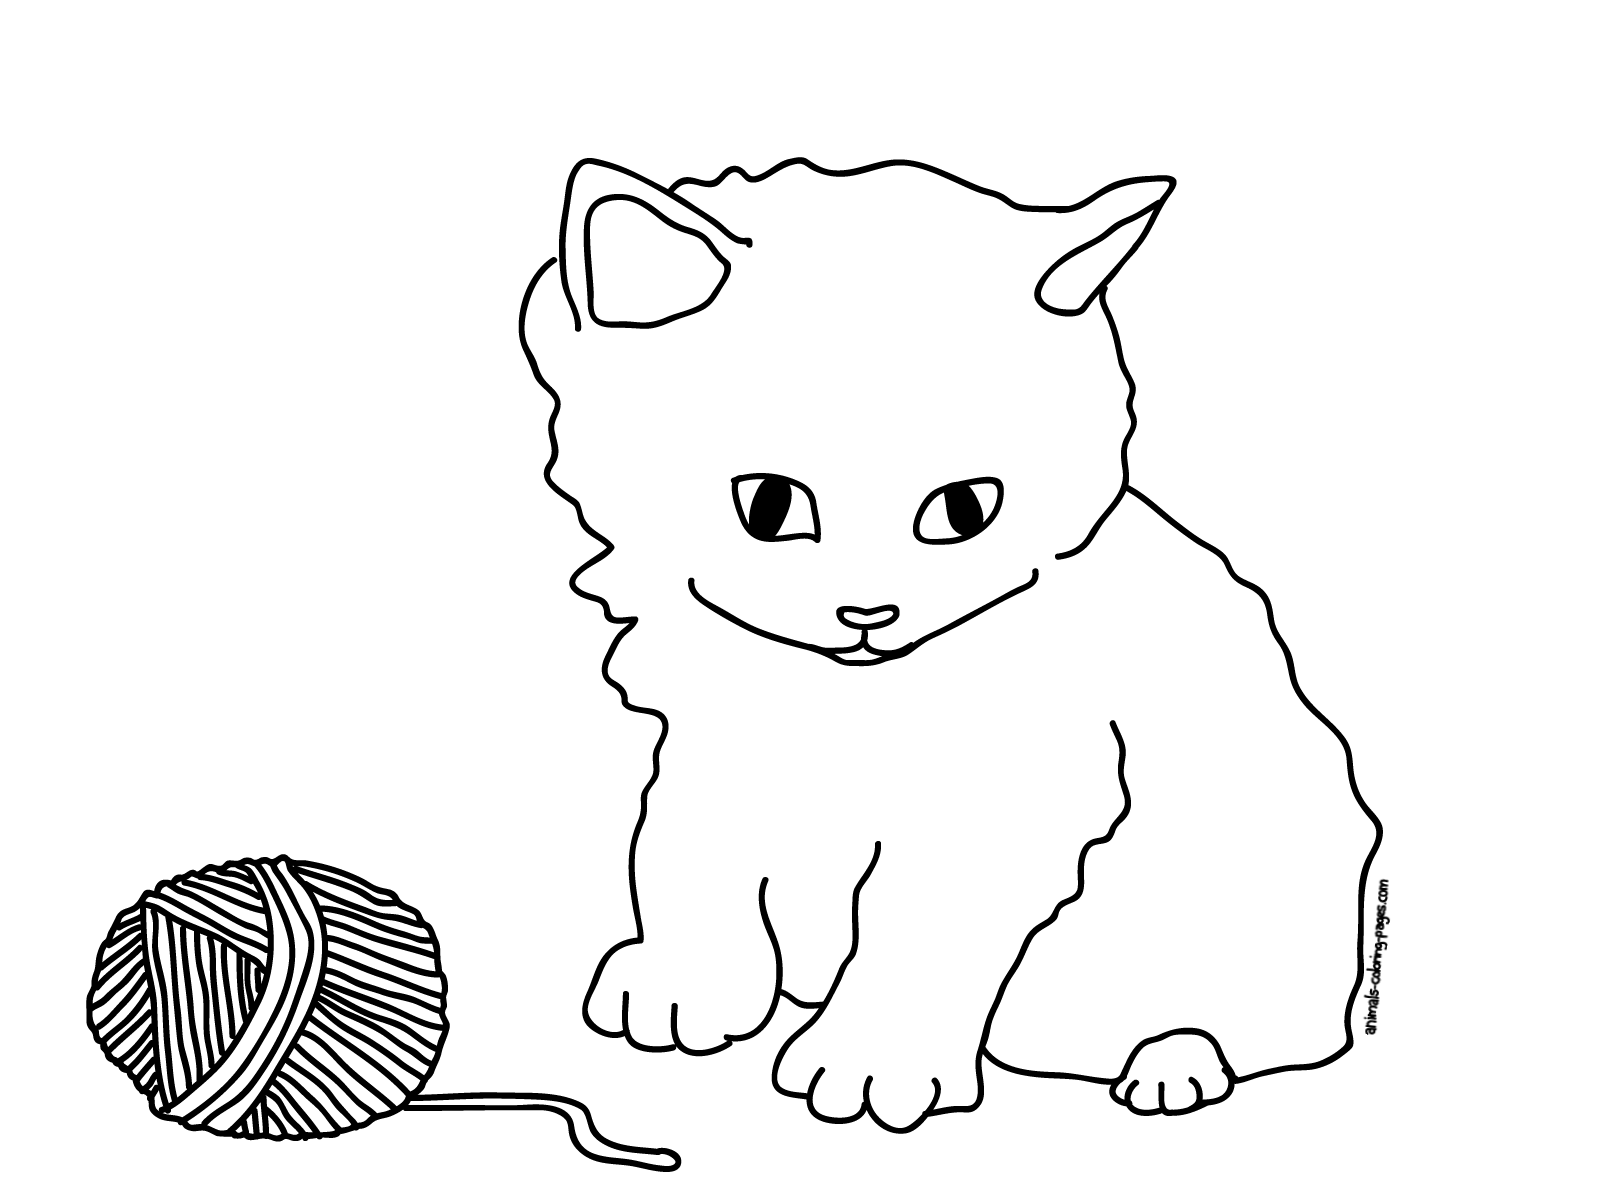 baby kitten coloring real kitten coloring pages at getdrawings free download kitten coloring baby